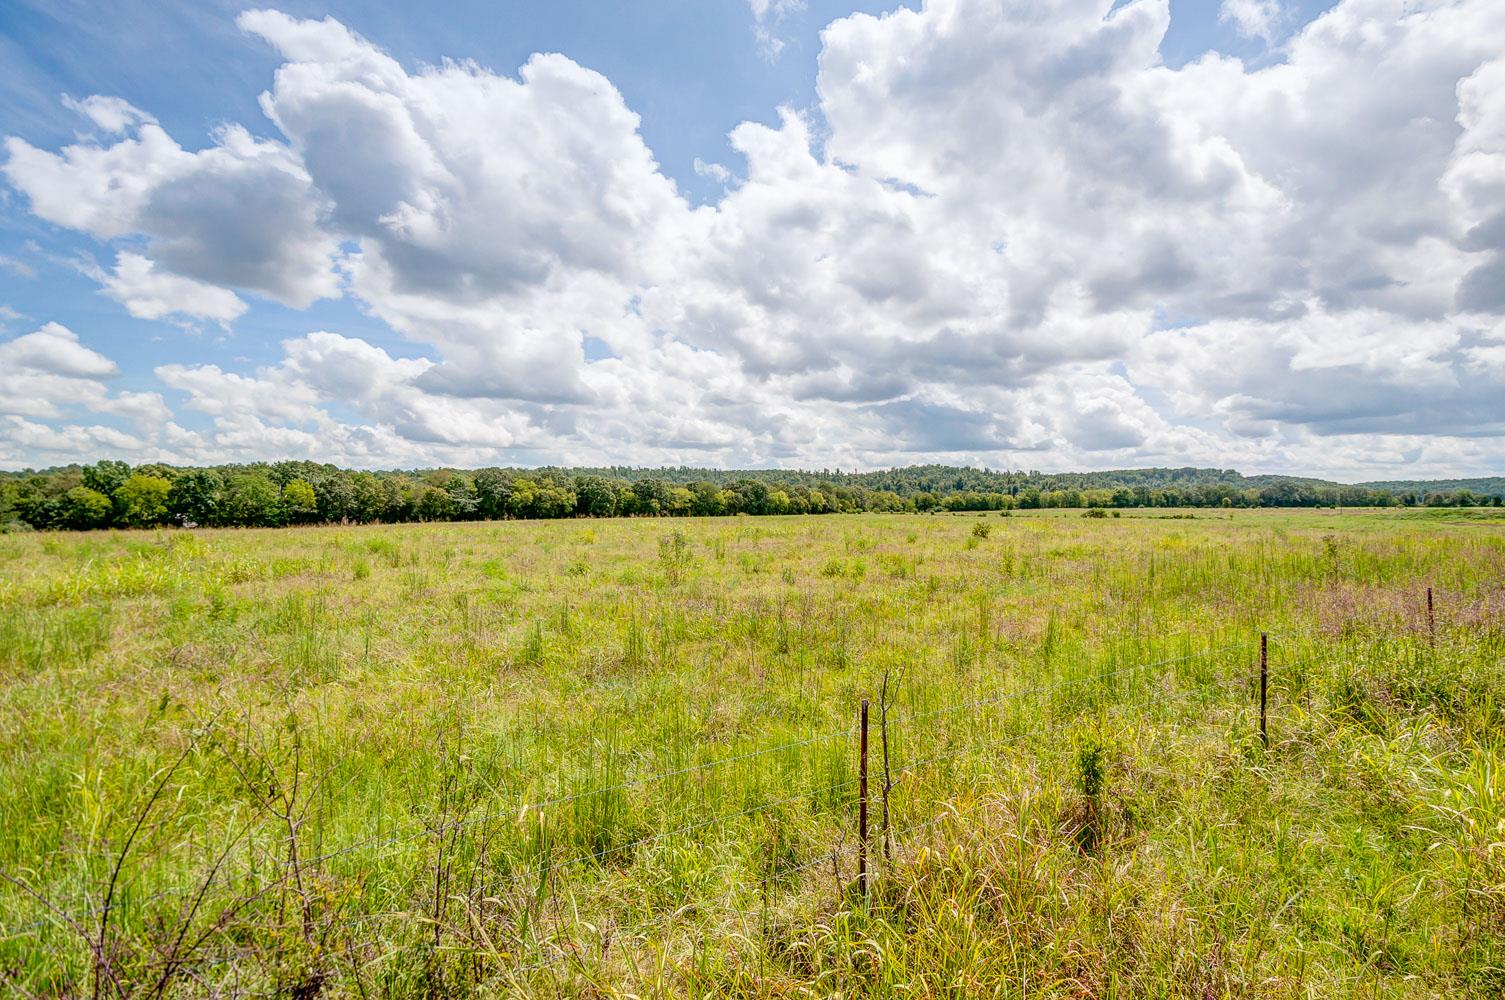 0 Pinewood Mansion Road, Nunnelly, TN 37137 - Nunnelly, TN real estate listing